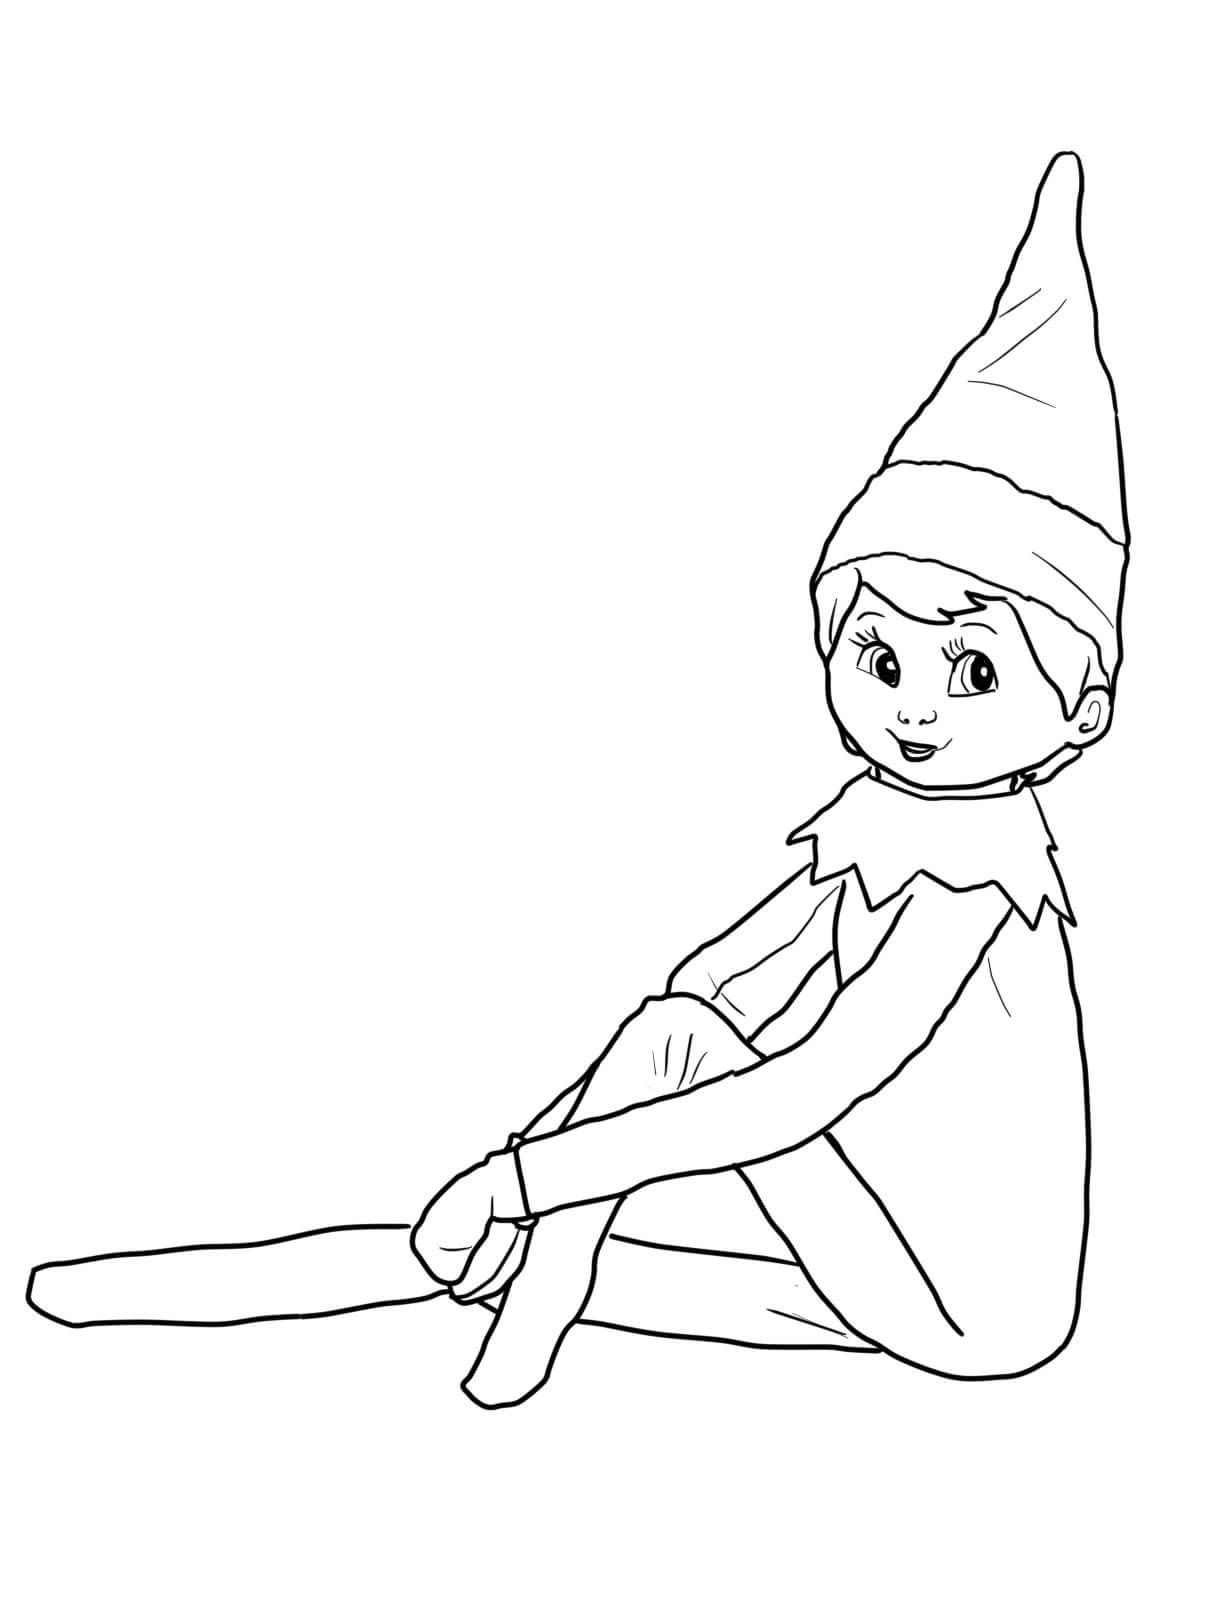 Elf On The Shelf Coloring Sheets For Children Educative Printable Christmas Coloring Pages Coloring Pages Inspirational Printable Coloring Pages